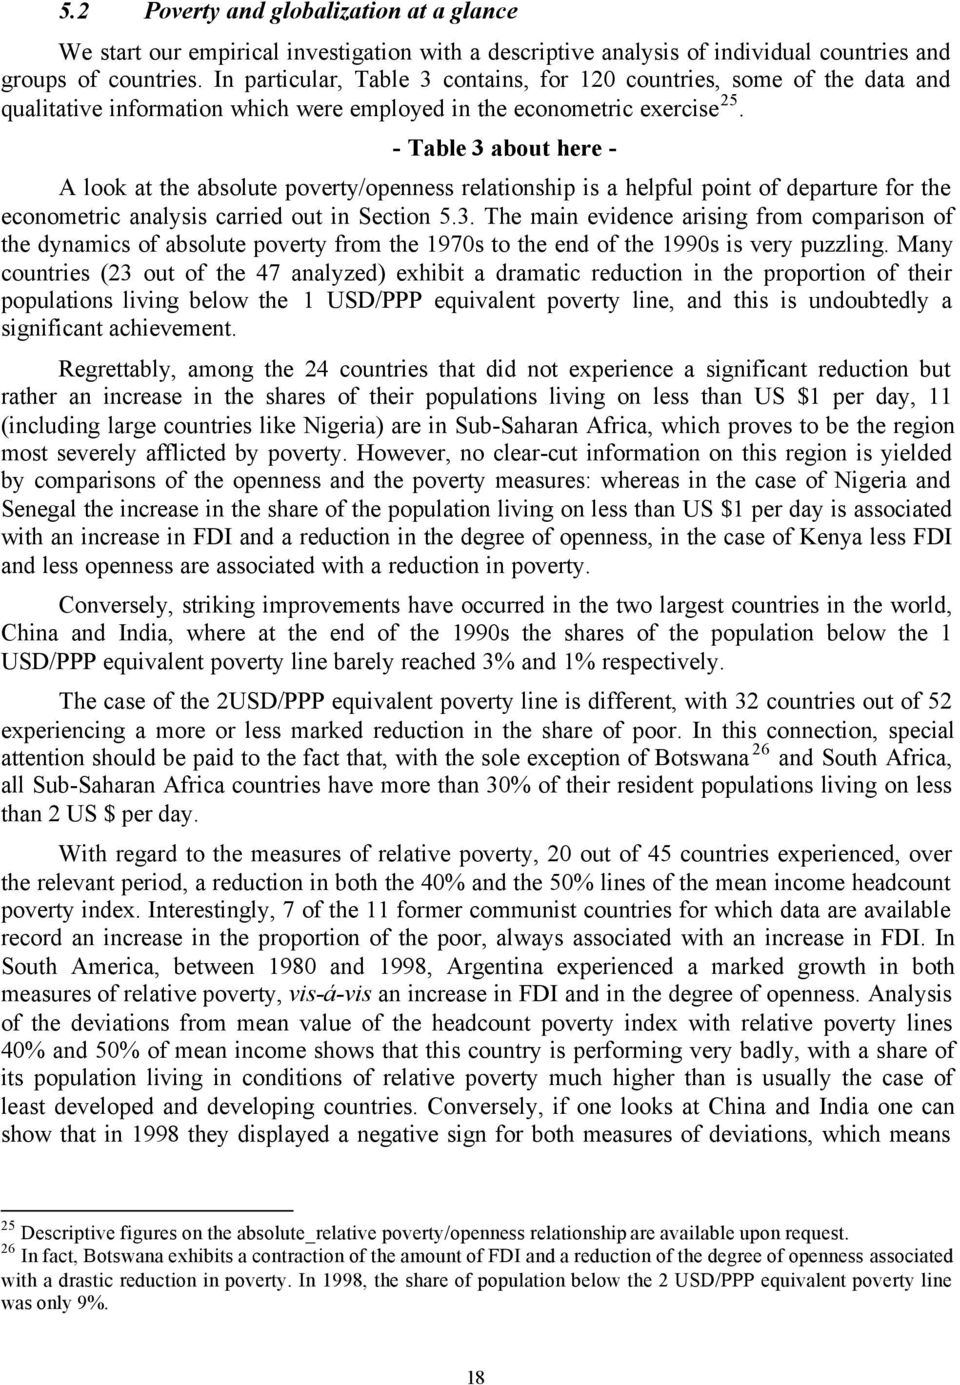 - Table 3 about here - A look at the absolute poverty/openness relationship is a helpful point of departure for the econometric analysis carried out in Section 5.3. The main evidence arising from comparison of the dynamics of absolute poverty from the 1970s to the end of the 1990s is very puzzling.